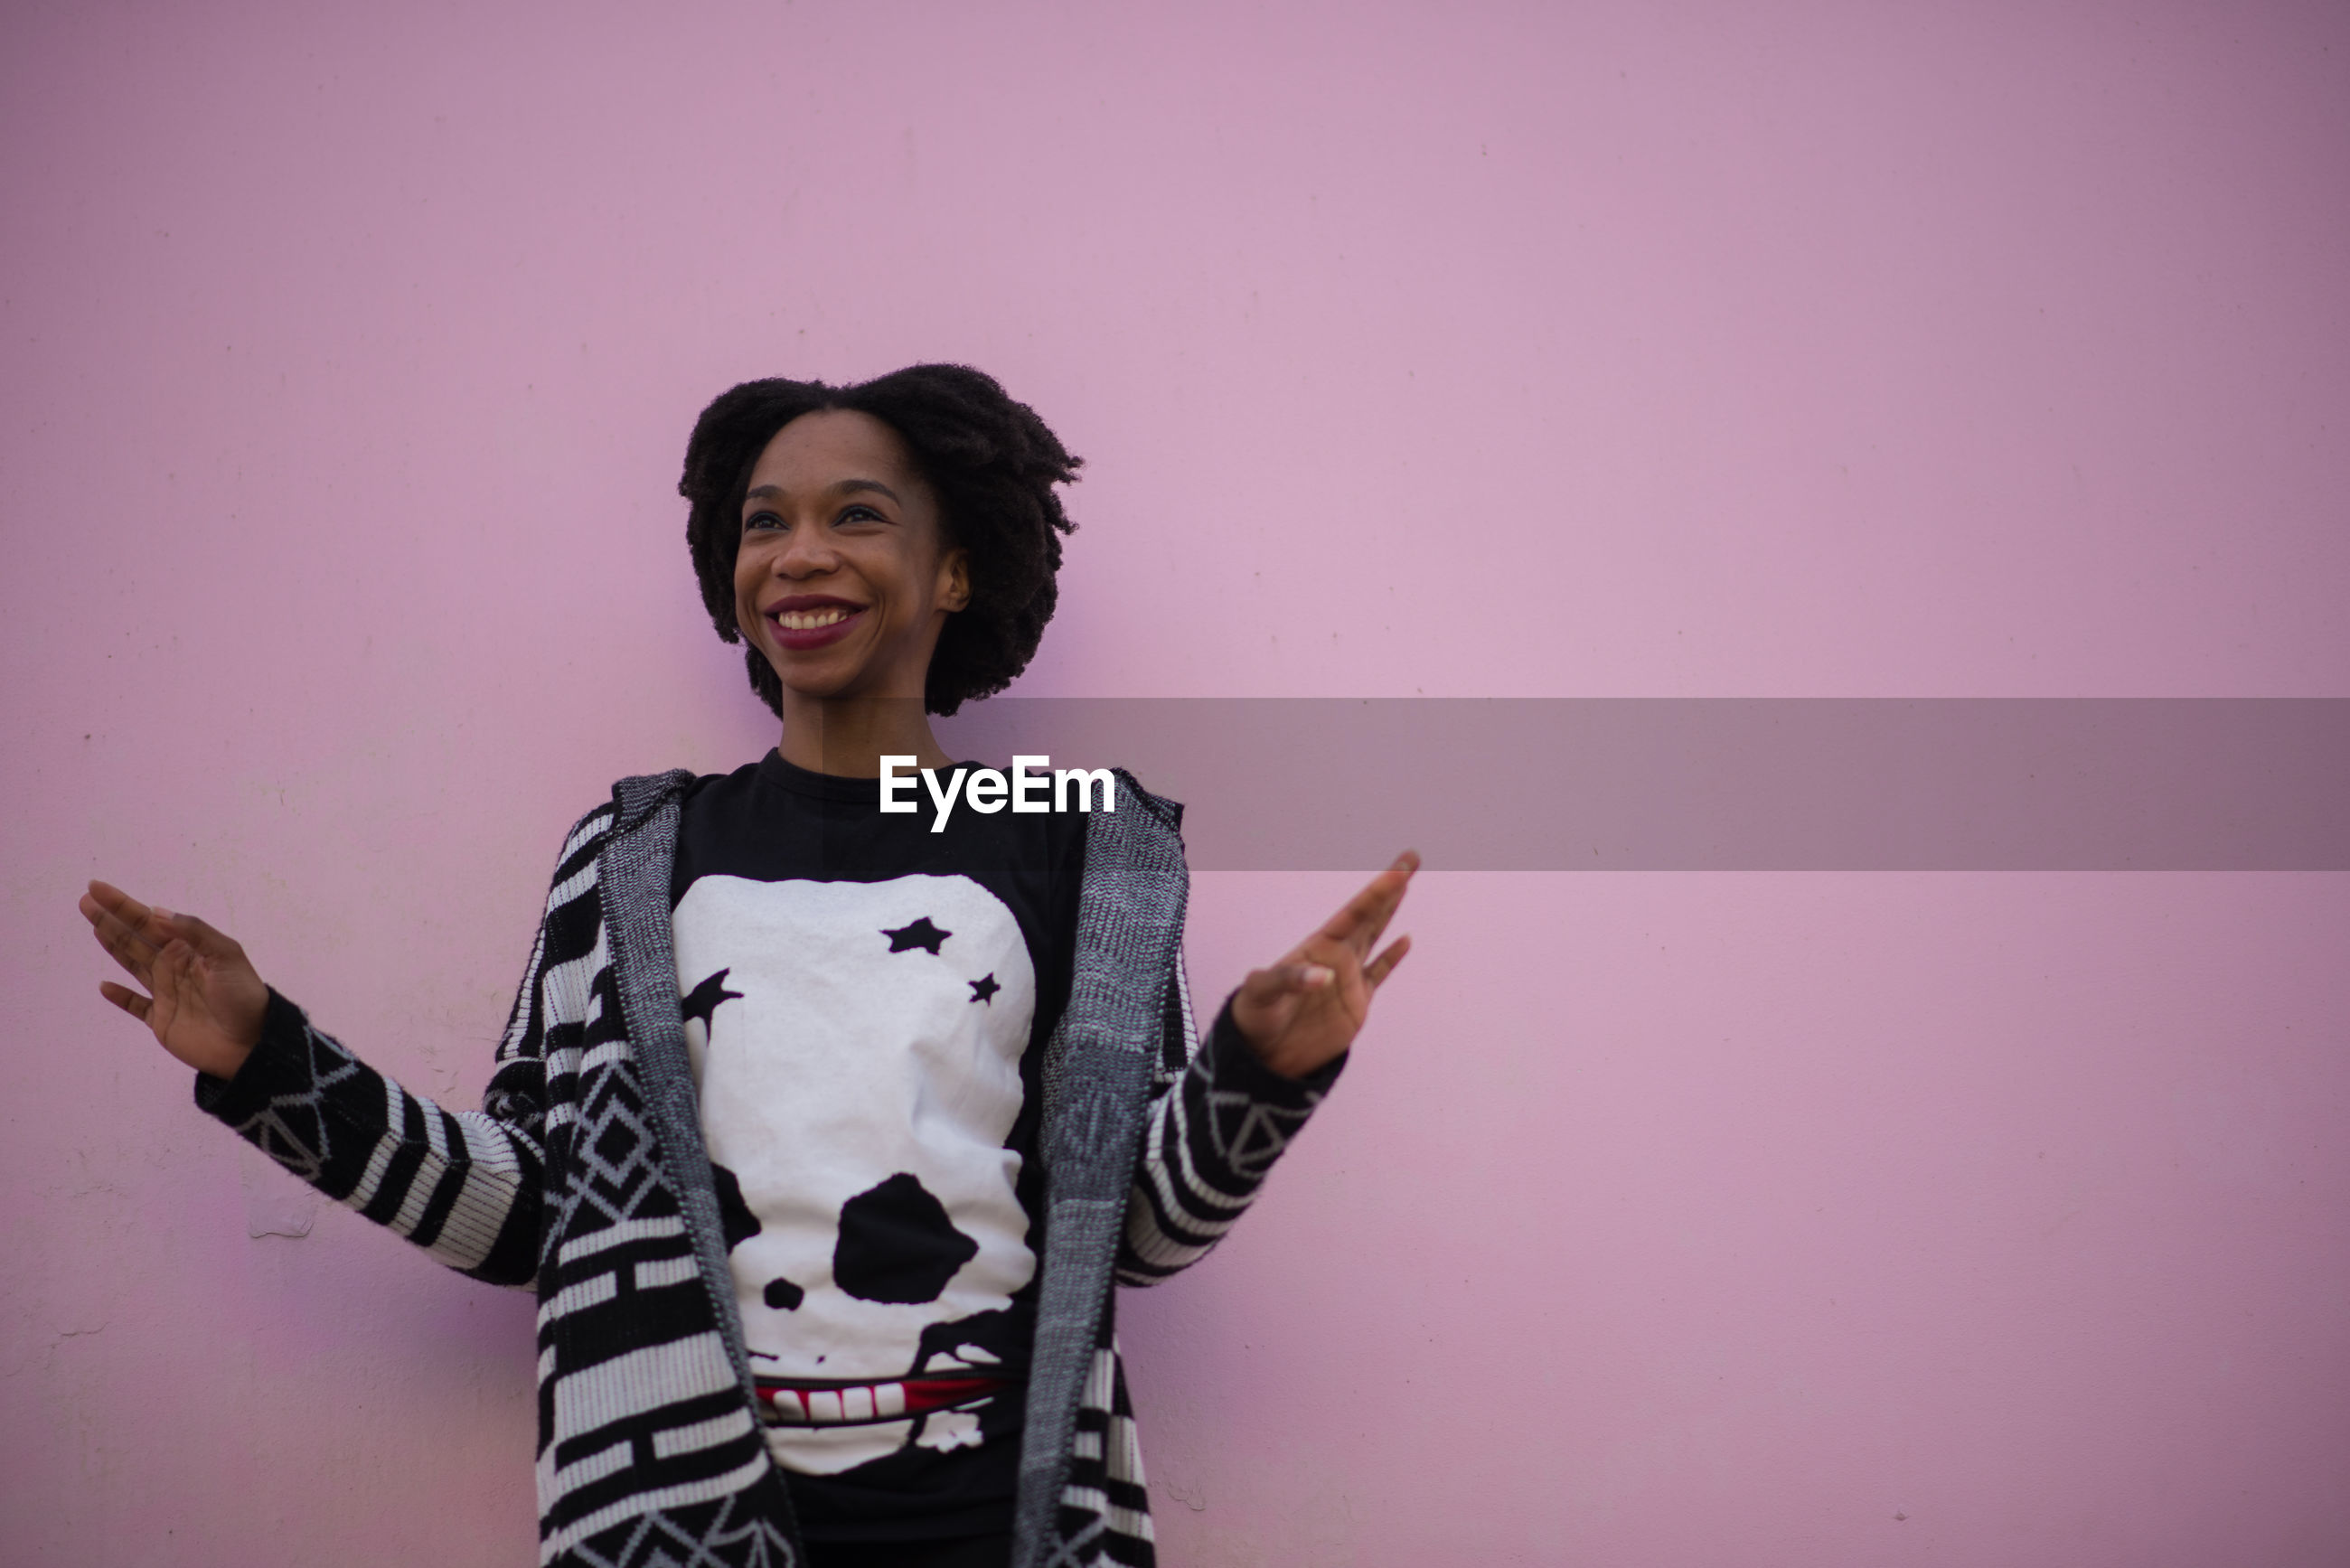 Low angle view of woman smiling while standing pink wall